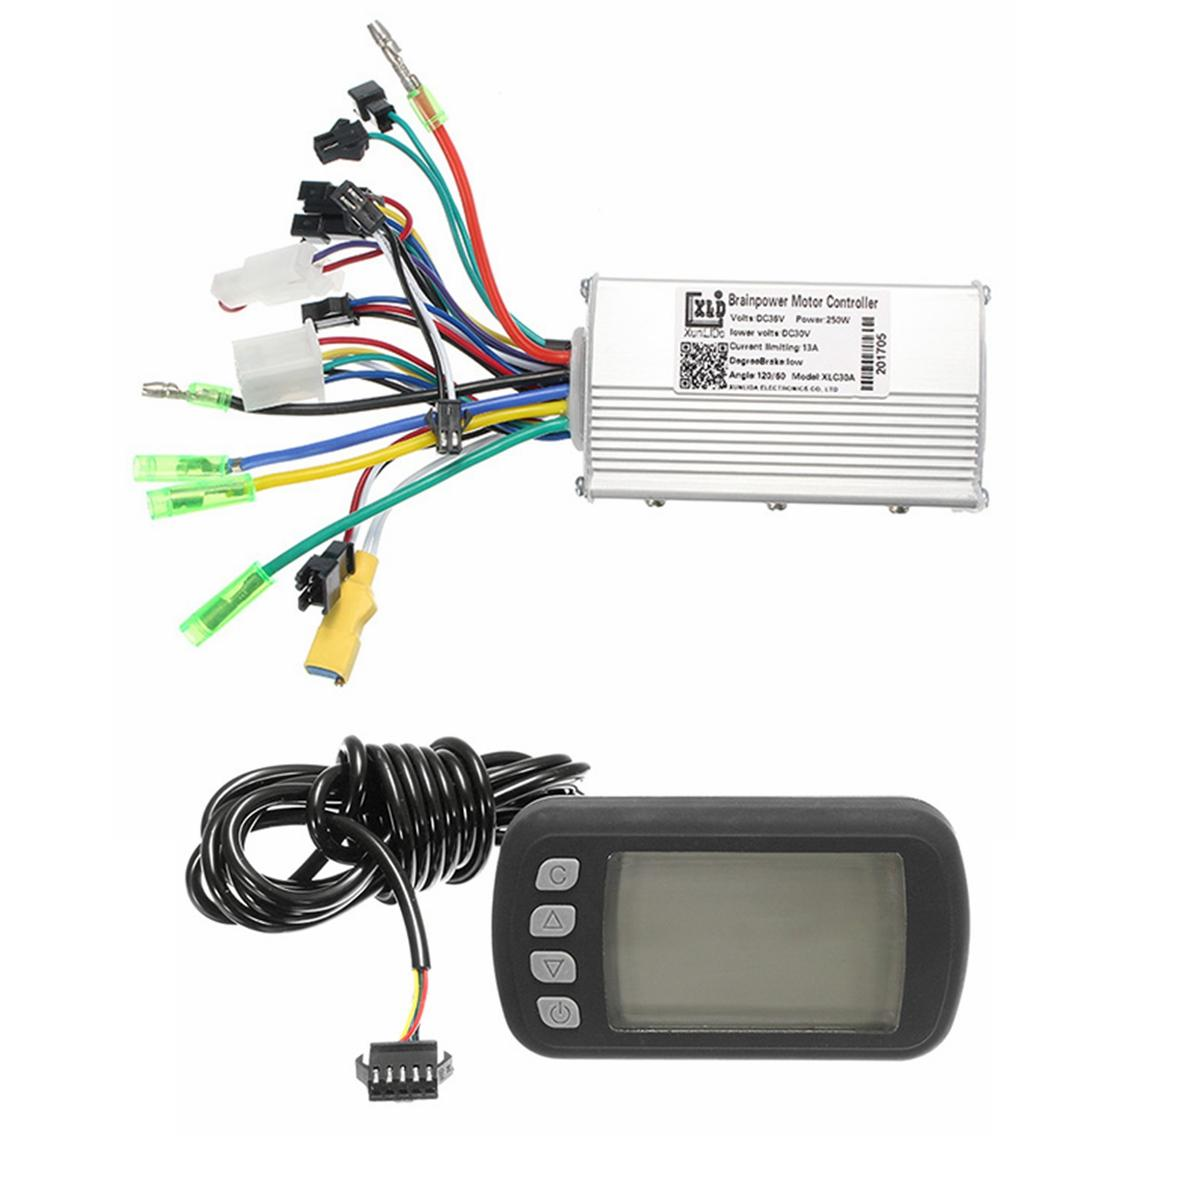 24V36V48V250W350W BLDC Motor Sd Controller LCD Display For MTB E-Bike on